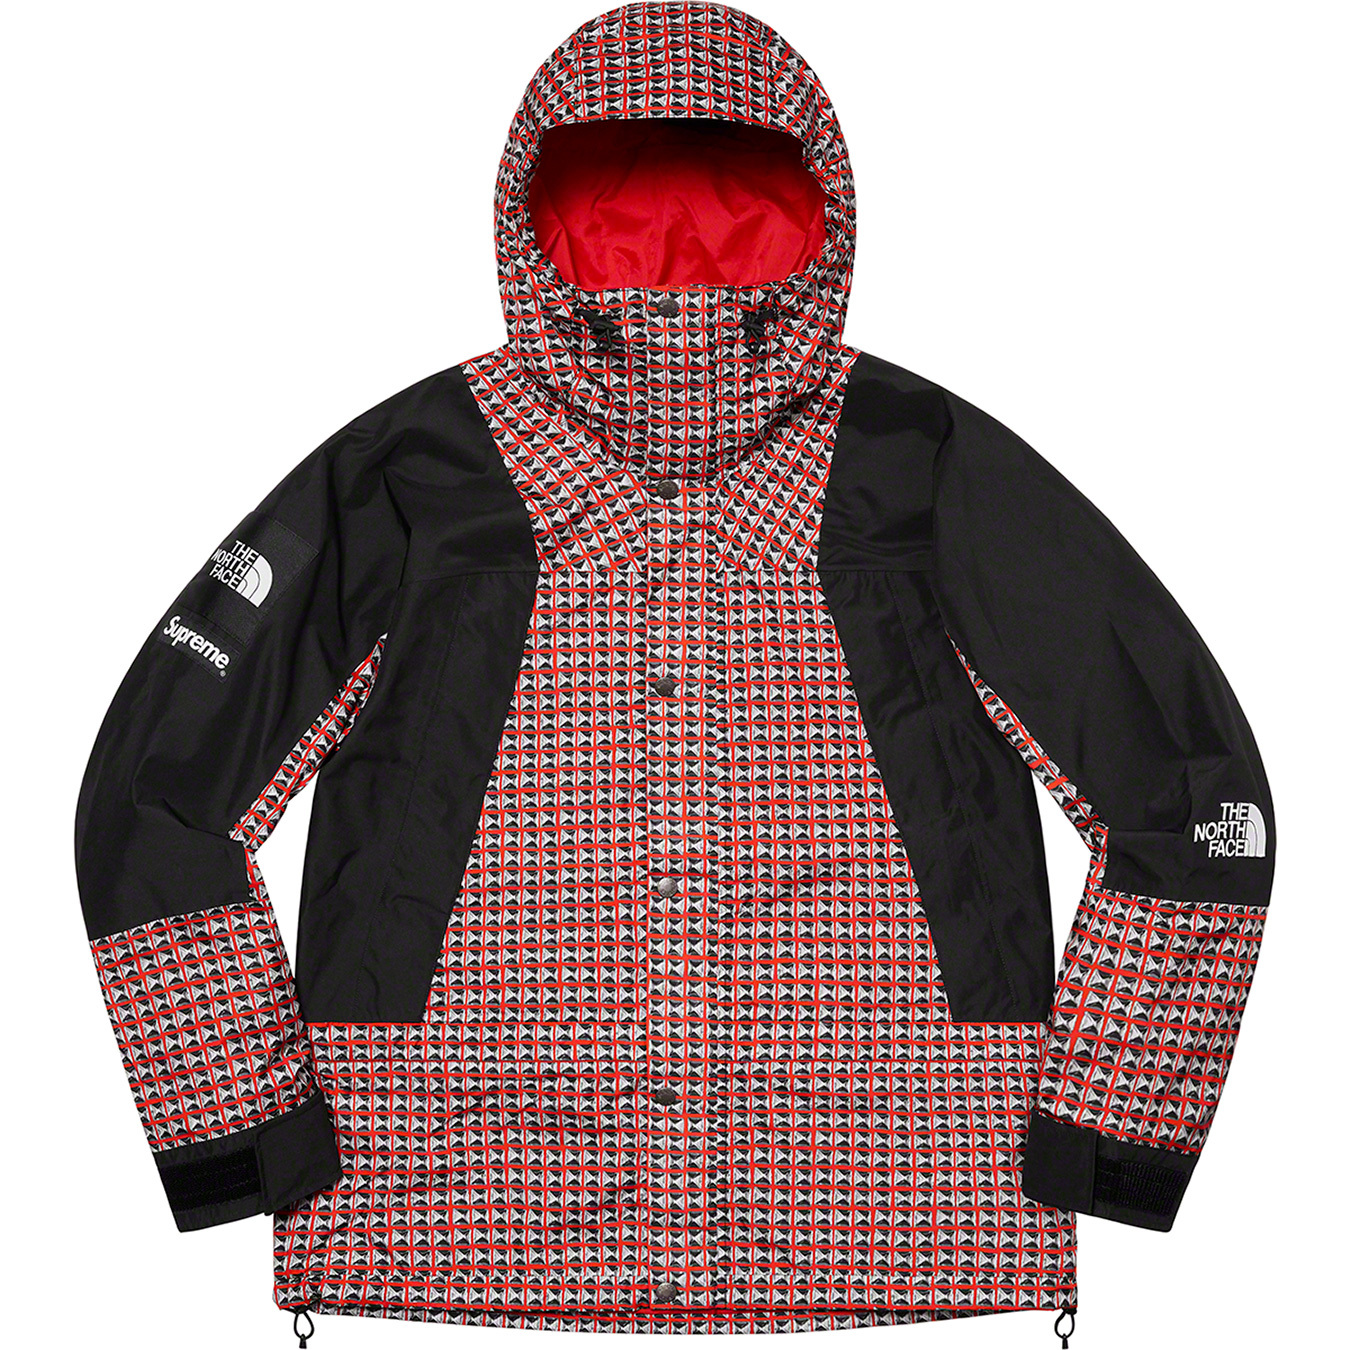 supreme-the-north-face-studded-21ss-collection-release-20210327-week5-mountain-light-jacket